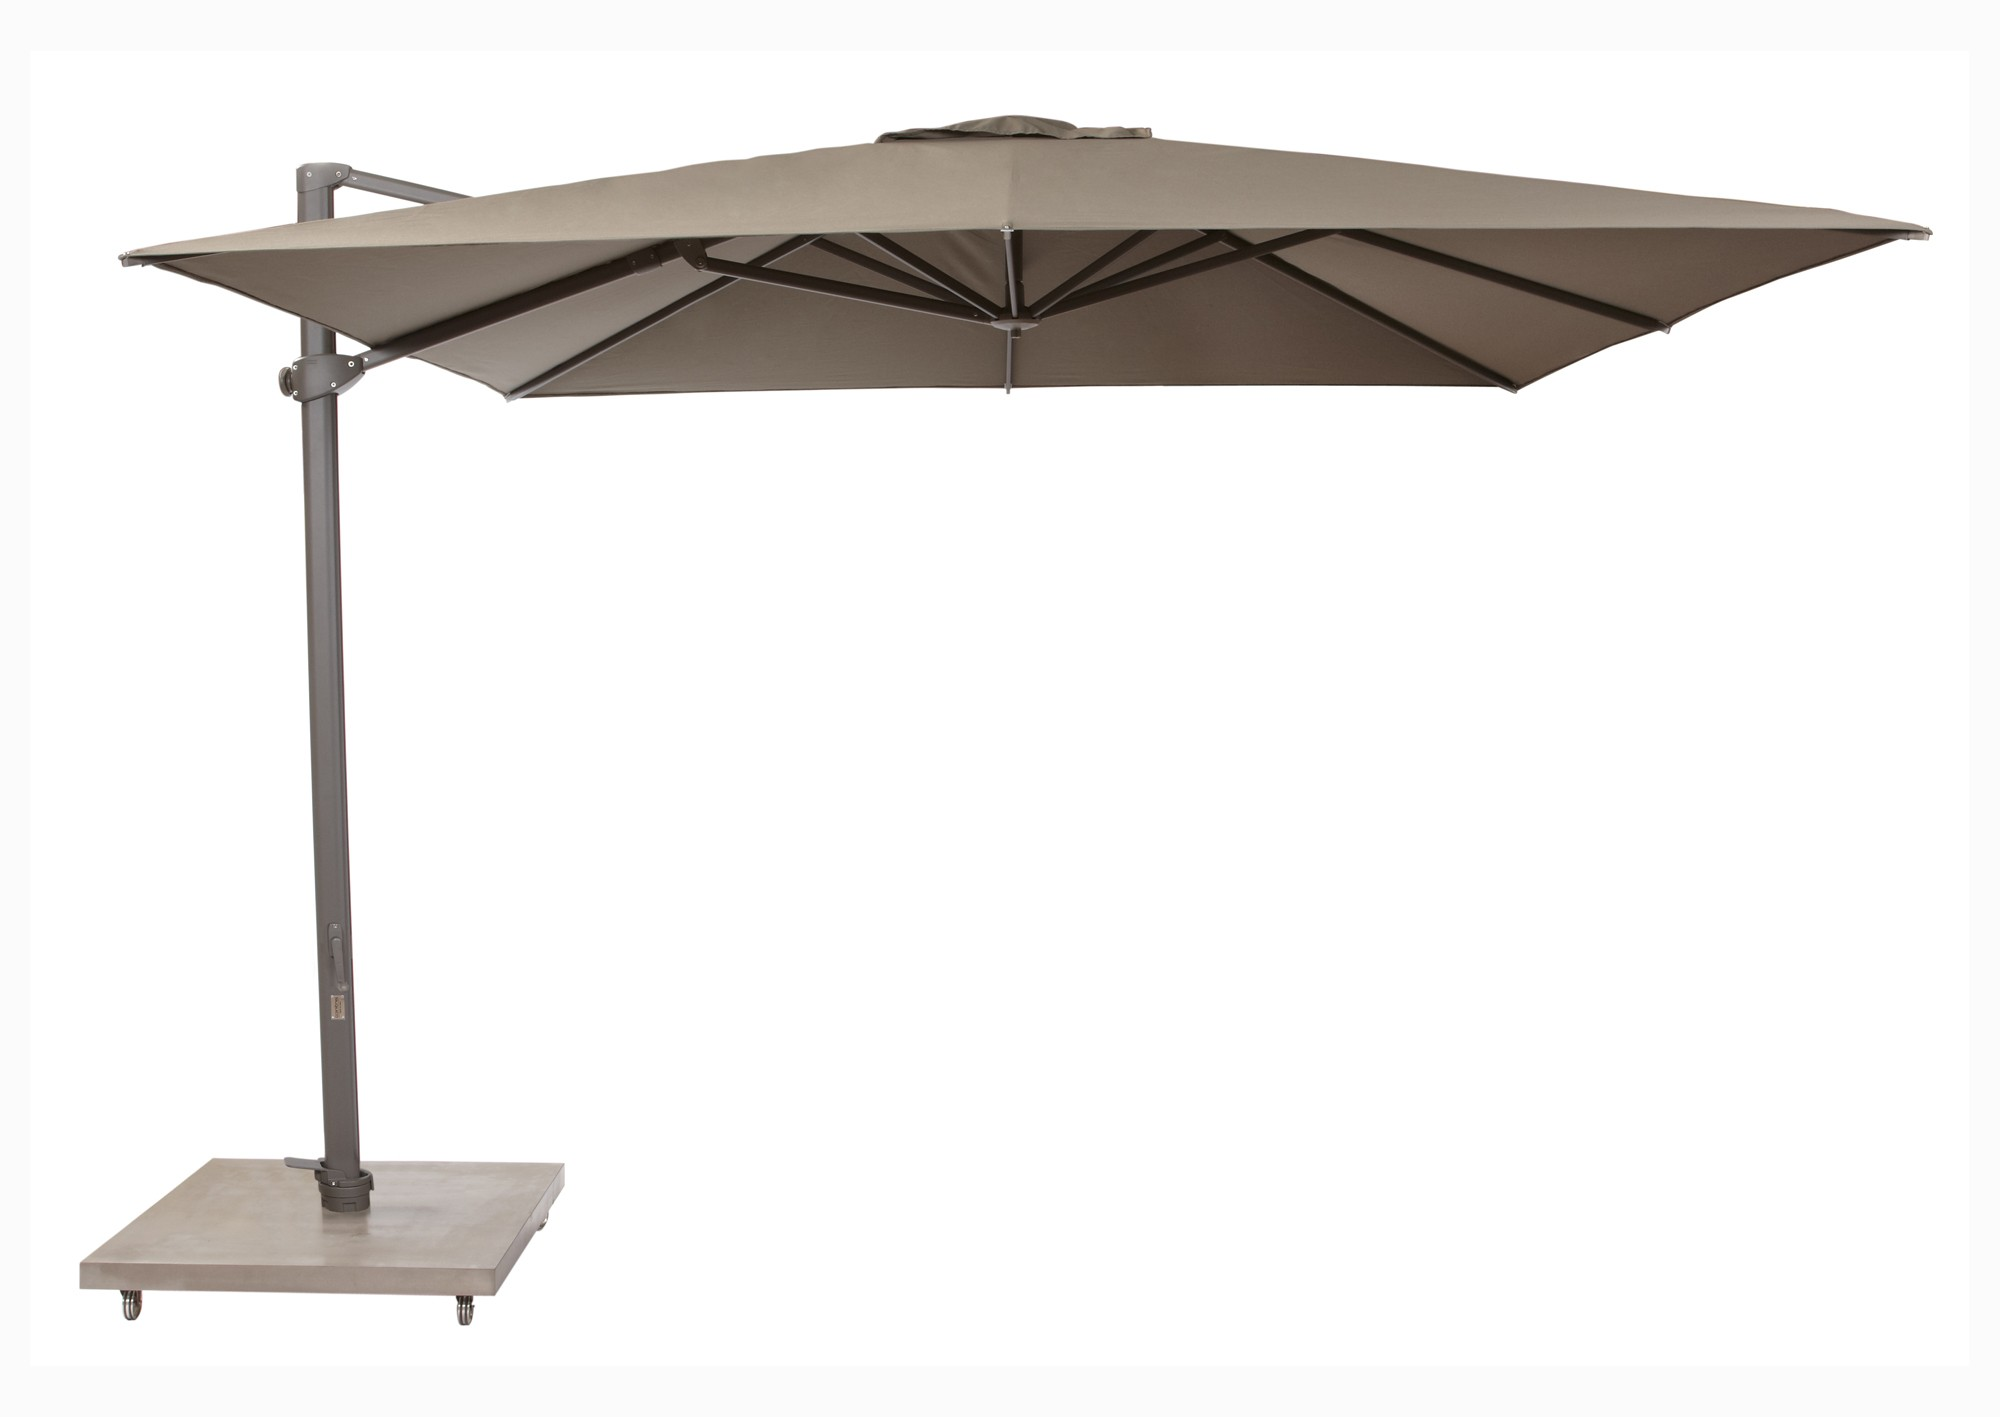 Castorama Parasol Parasol Rectangulaire Inclinable Castorama Maison Design